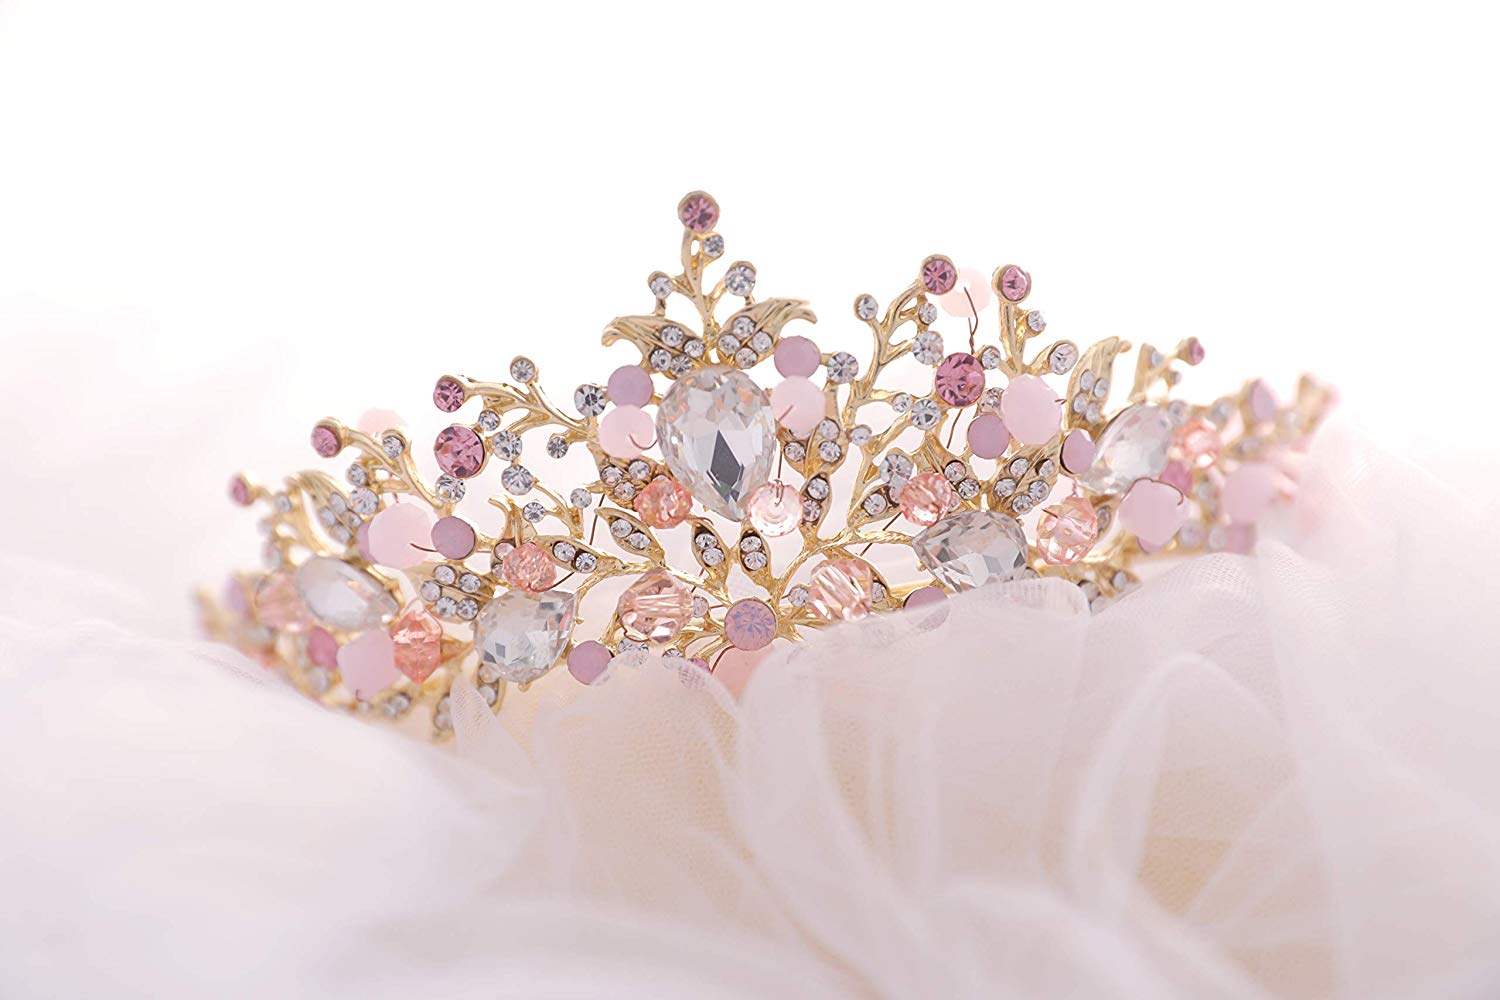 71JYUPO9jHL._SL1500_ Gold Princess Crown Tiara with Matching Earring Set | Sparkly Coral Reef Shaped Design + 2 FREE Hair Pins (Pink CZ Crystals)